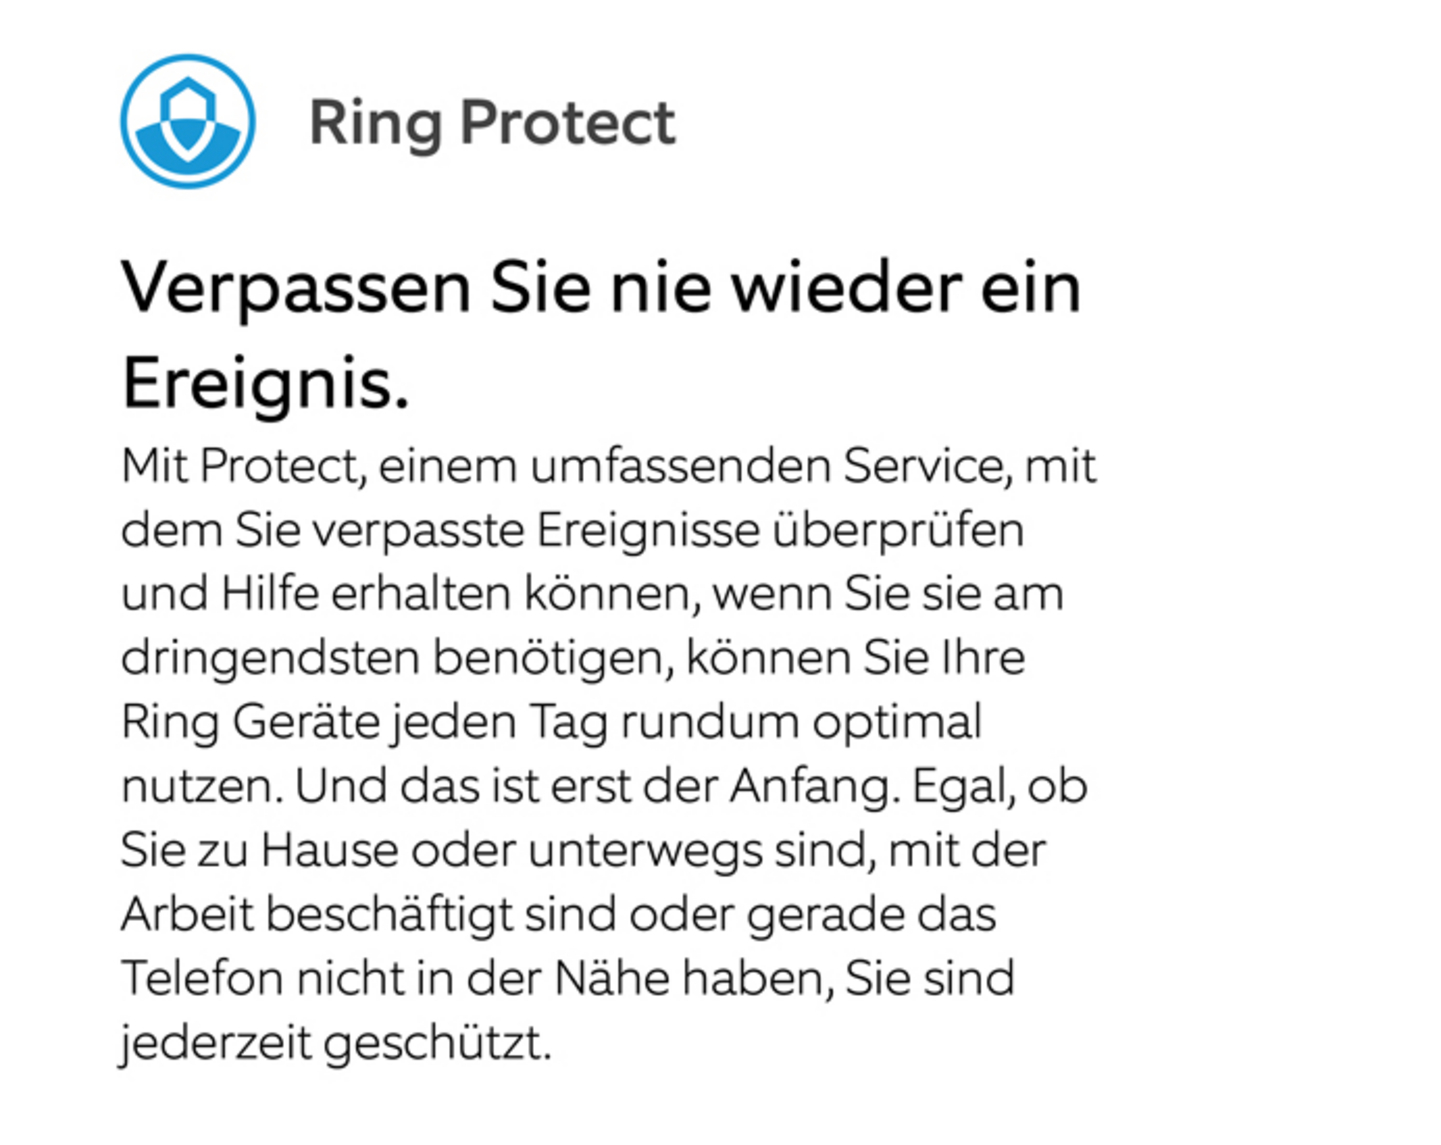 Ring Protect